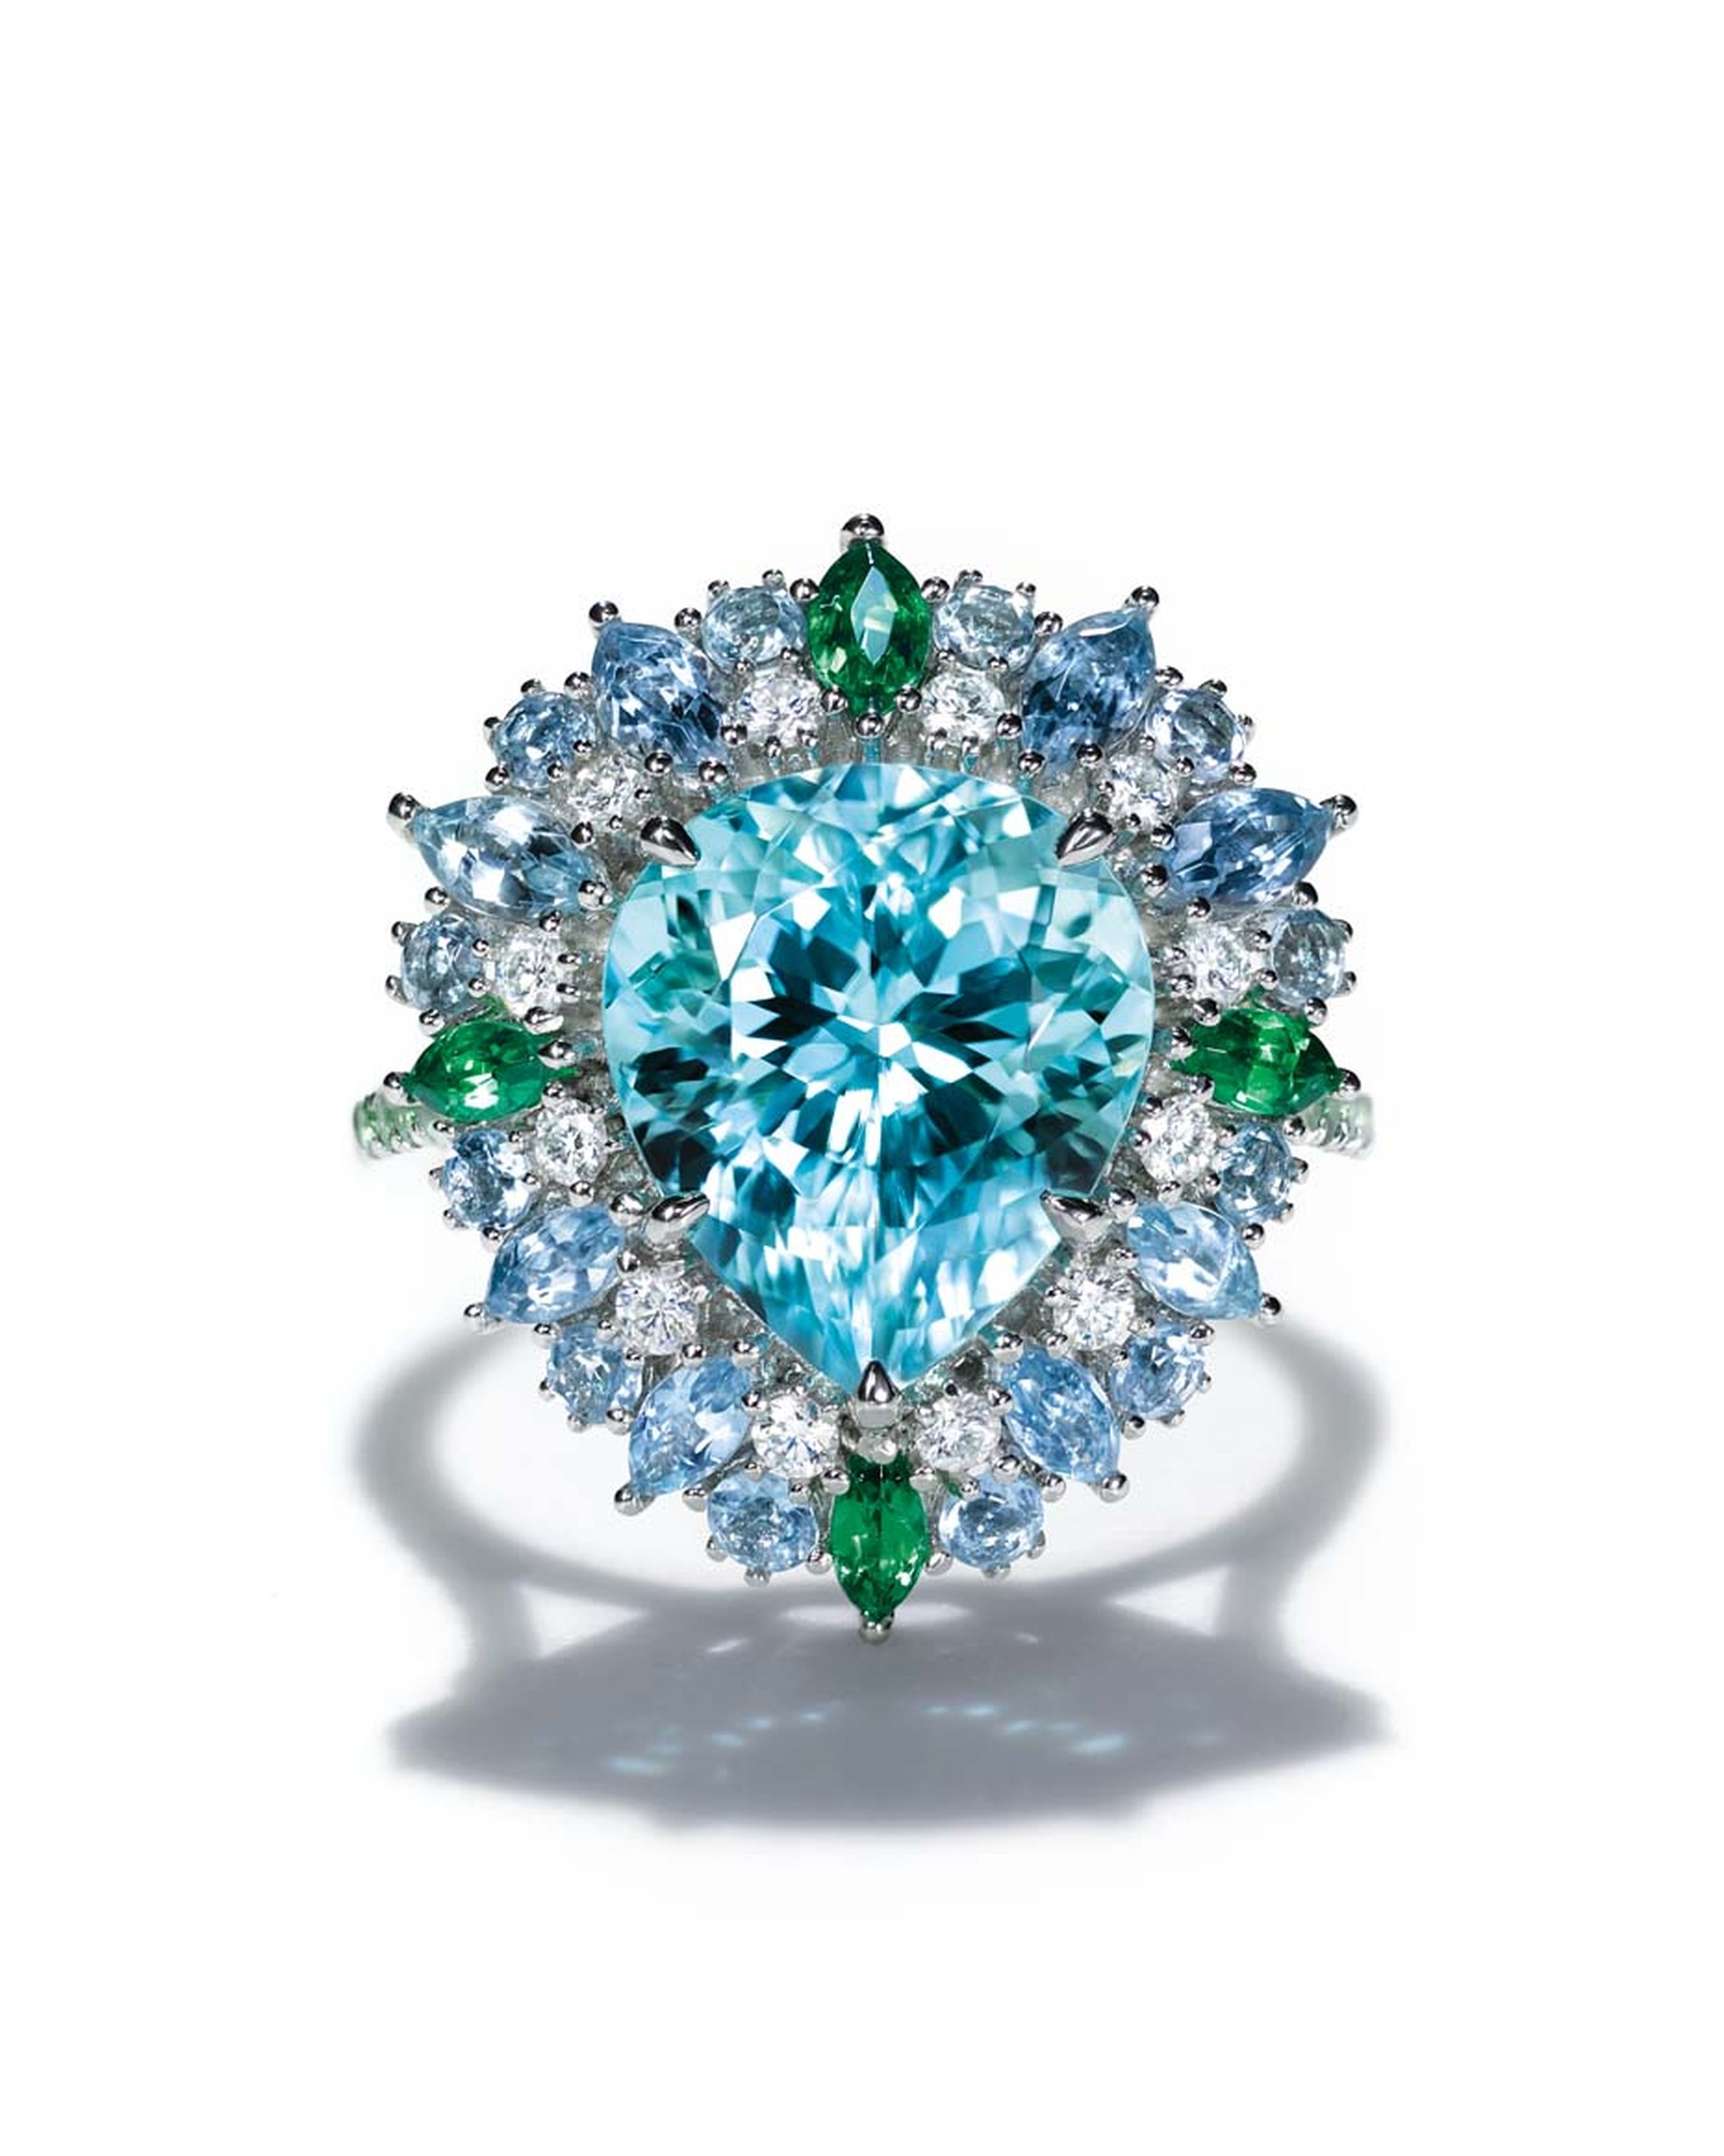 Tiffany ring set with a central 4.42ctt pear-shaped blue cuprian elbaite tourmaline surrounded by aquamarines, tsavorites and diamonds in platinum. From the 2015 Blue Book collection.